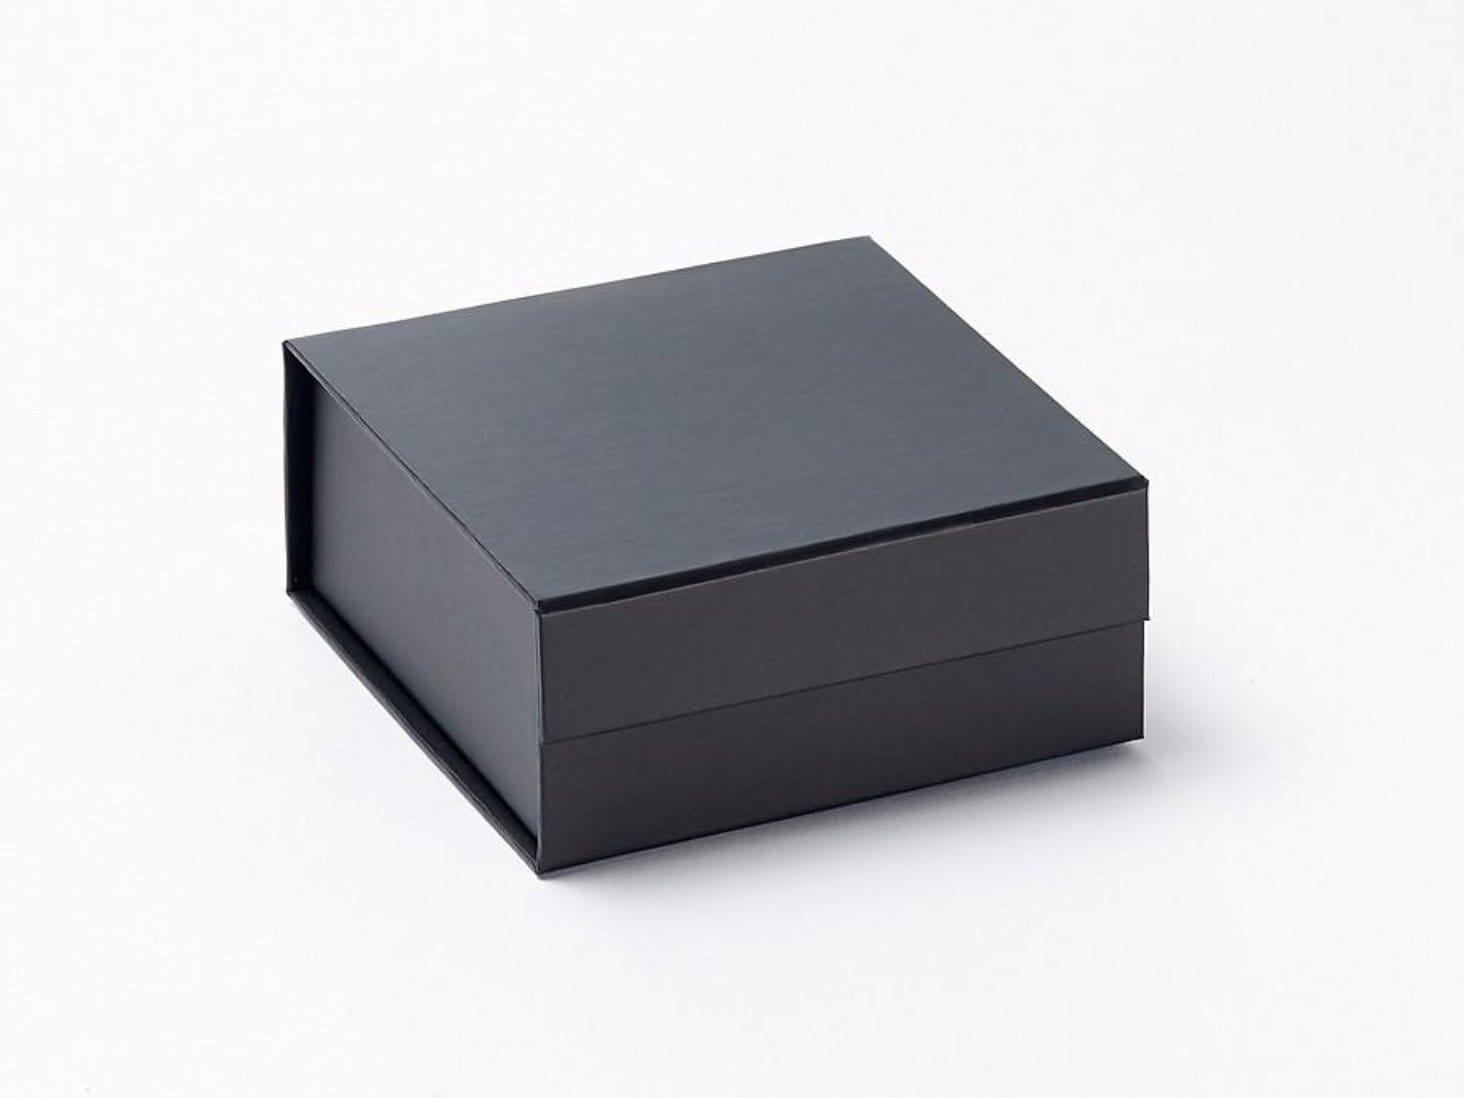 Small Black Gift Box without ribbon from Foldabox UK